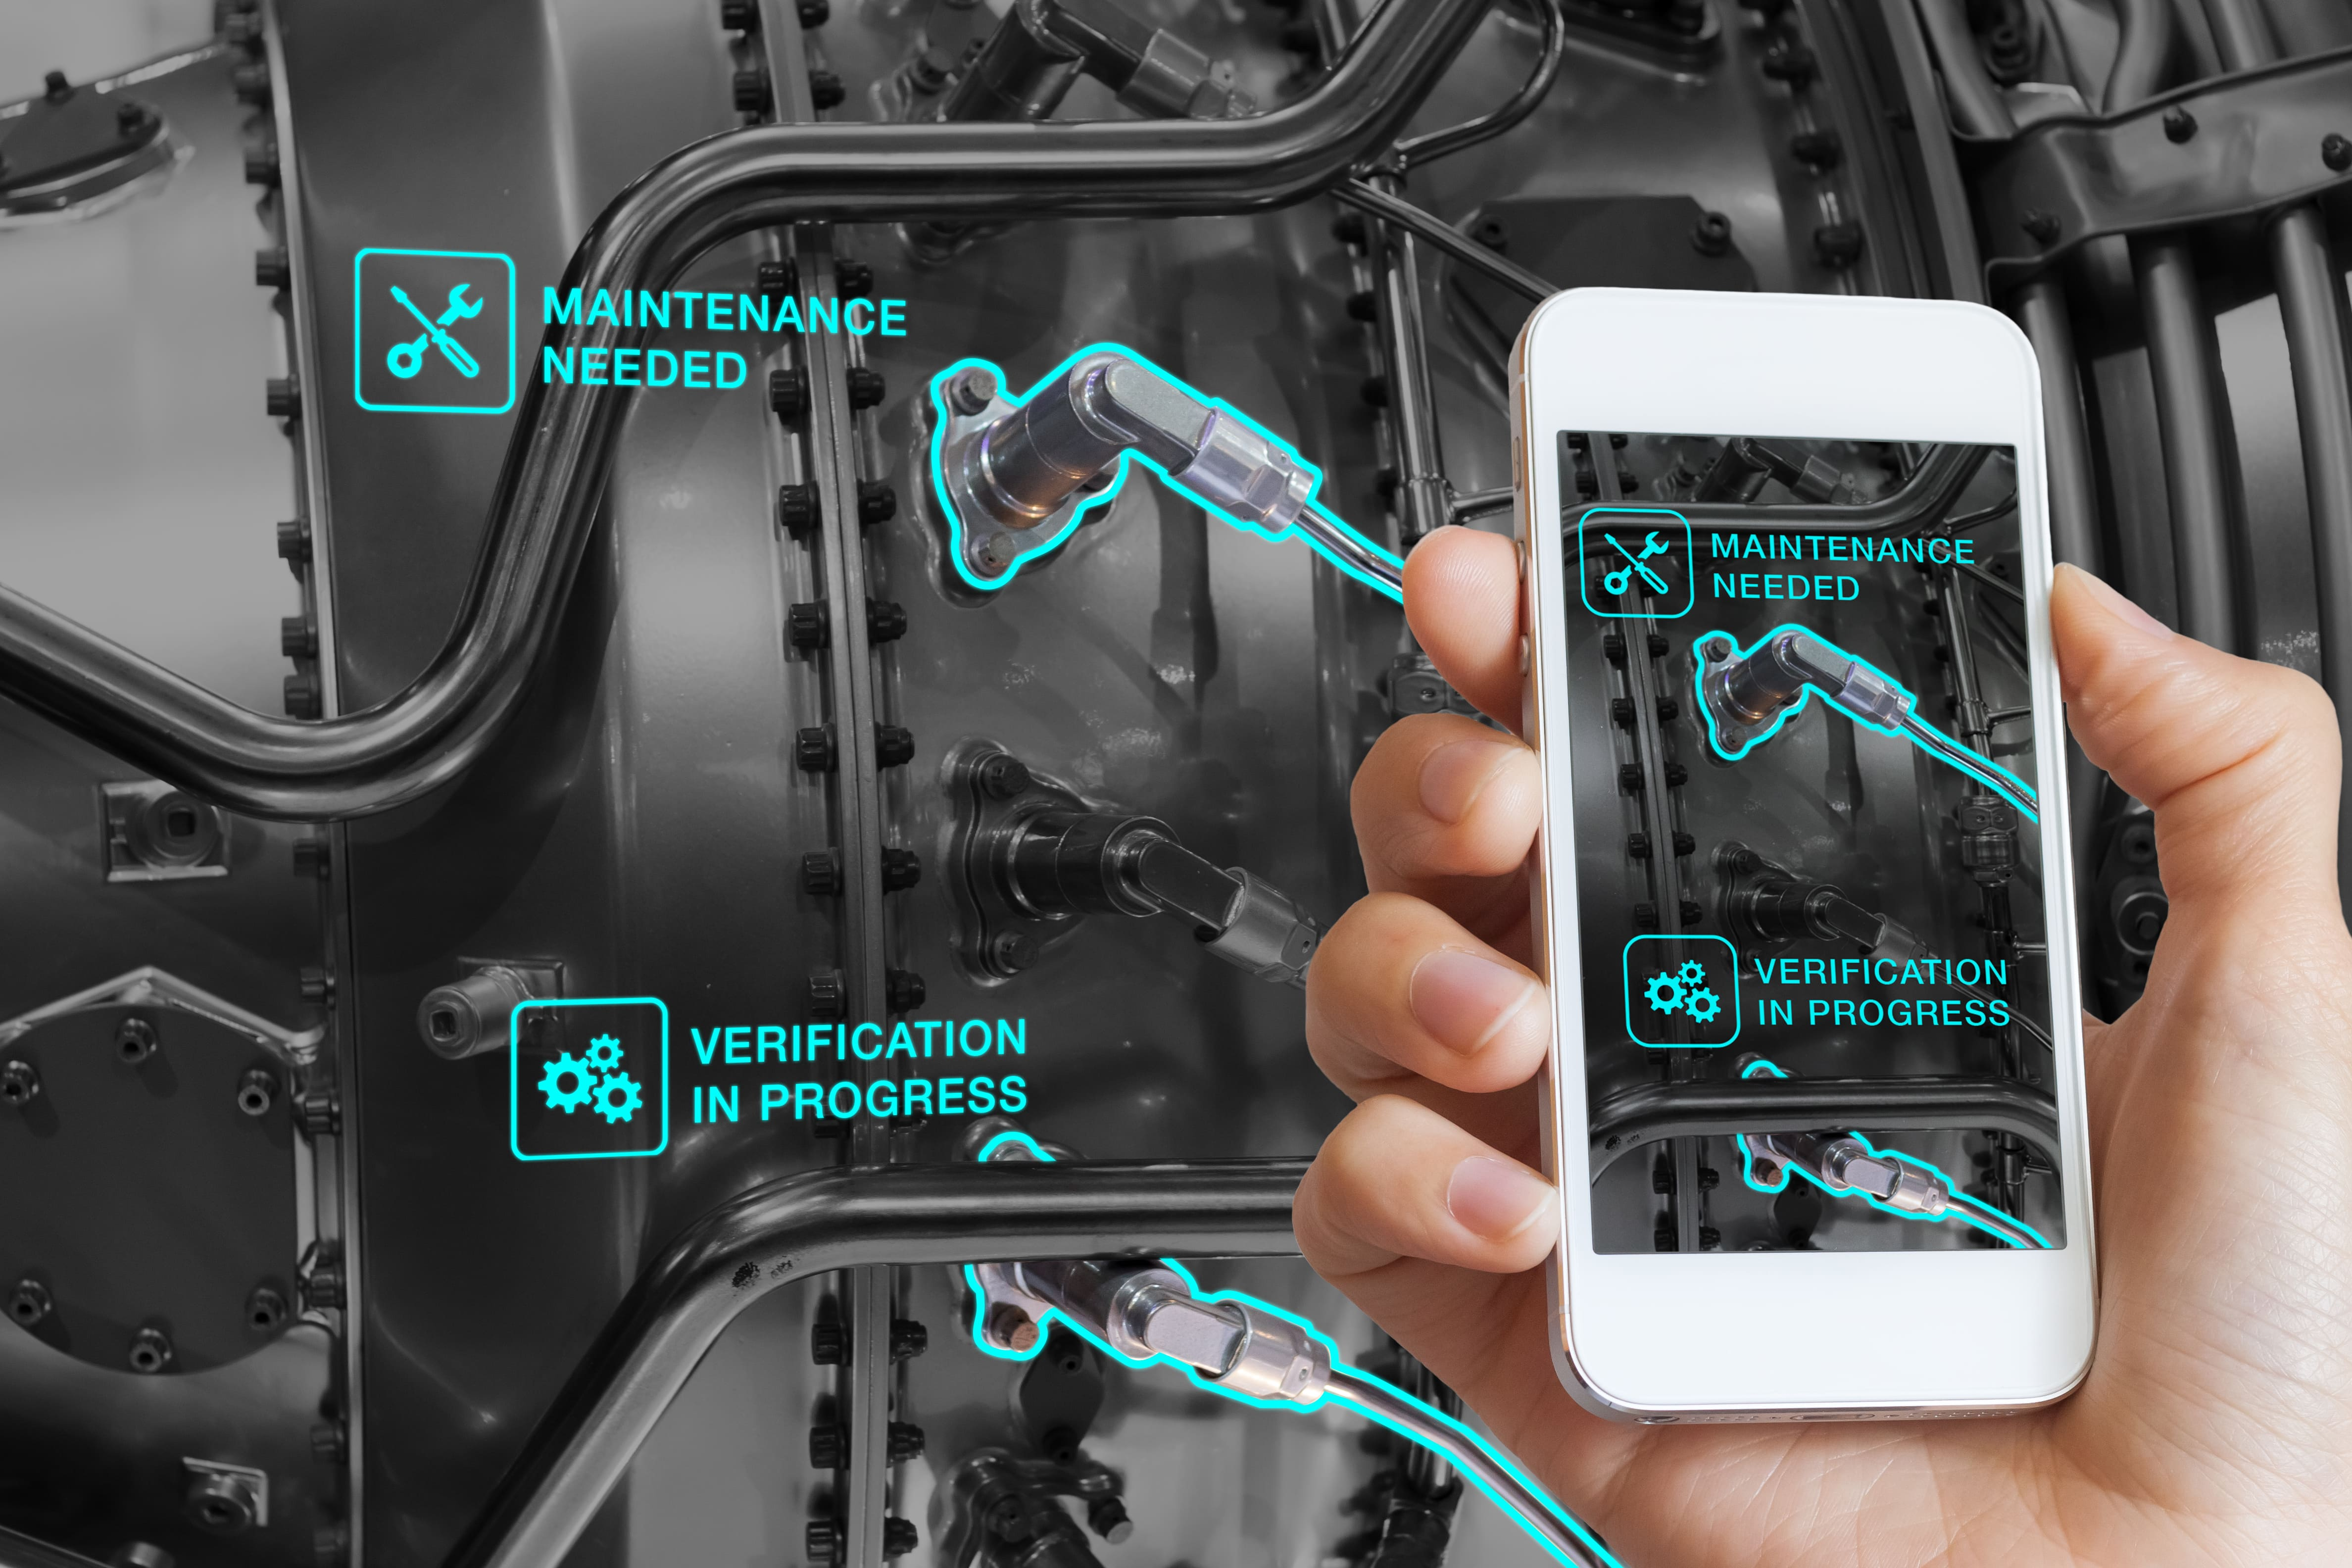 augmented reality application for remote maintenance